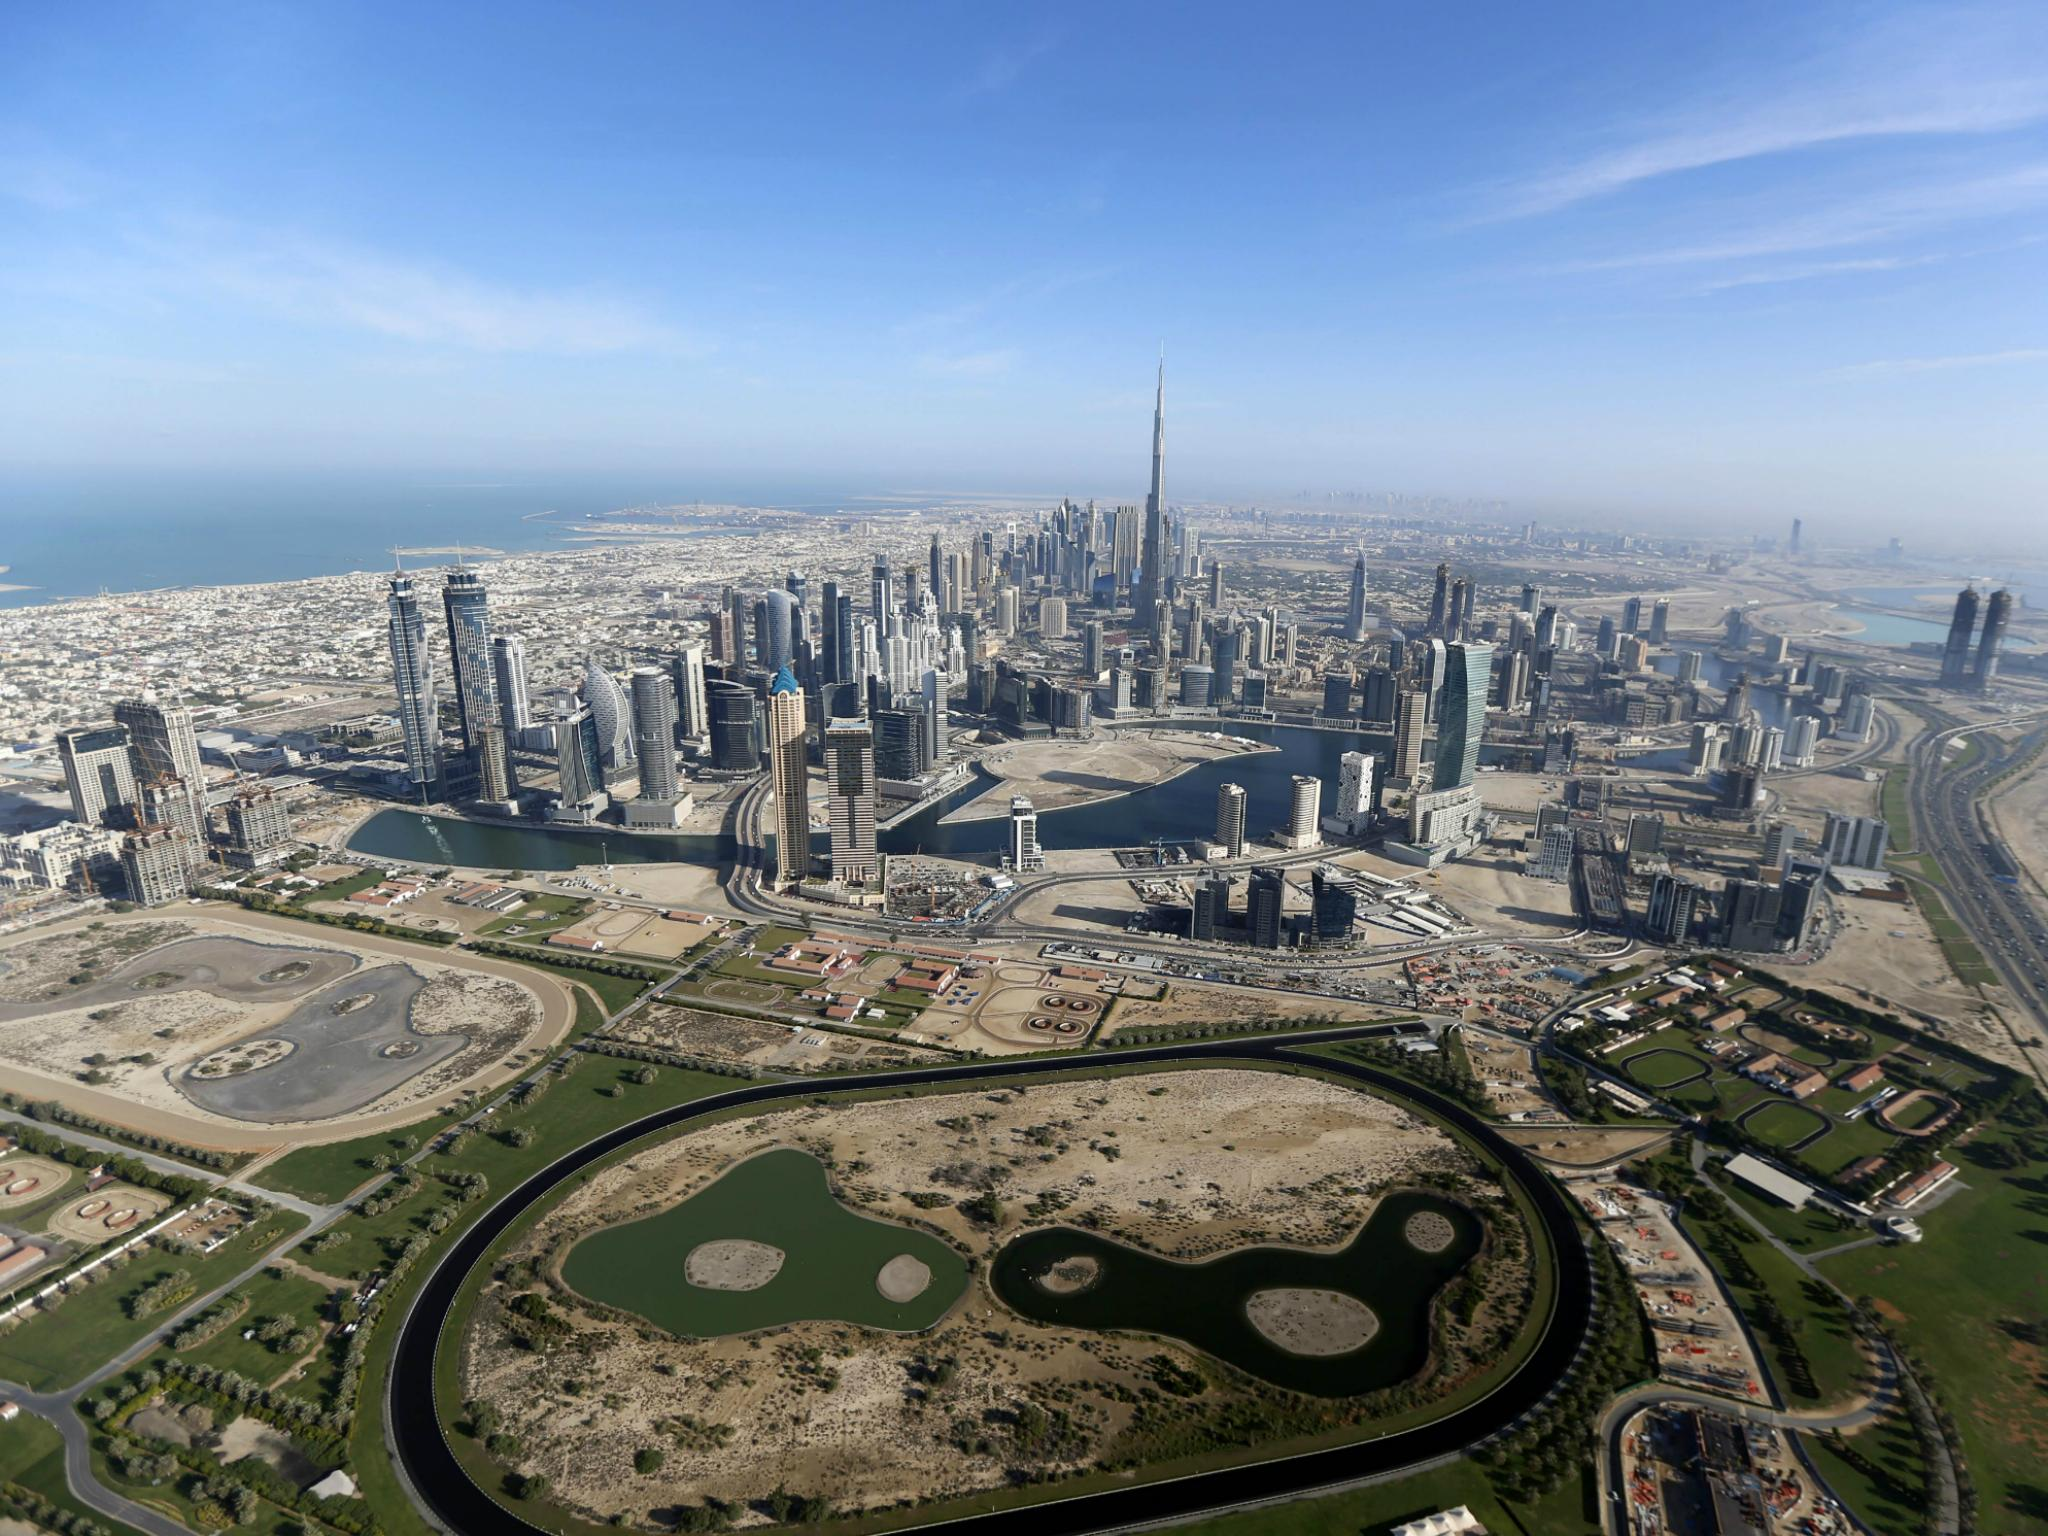 D Printing Dubai Exhibition : World s first d printed skyscraper to be built in uae the